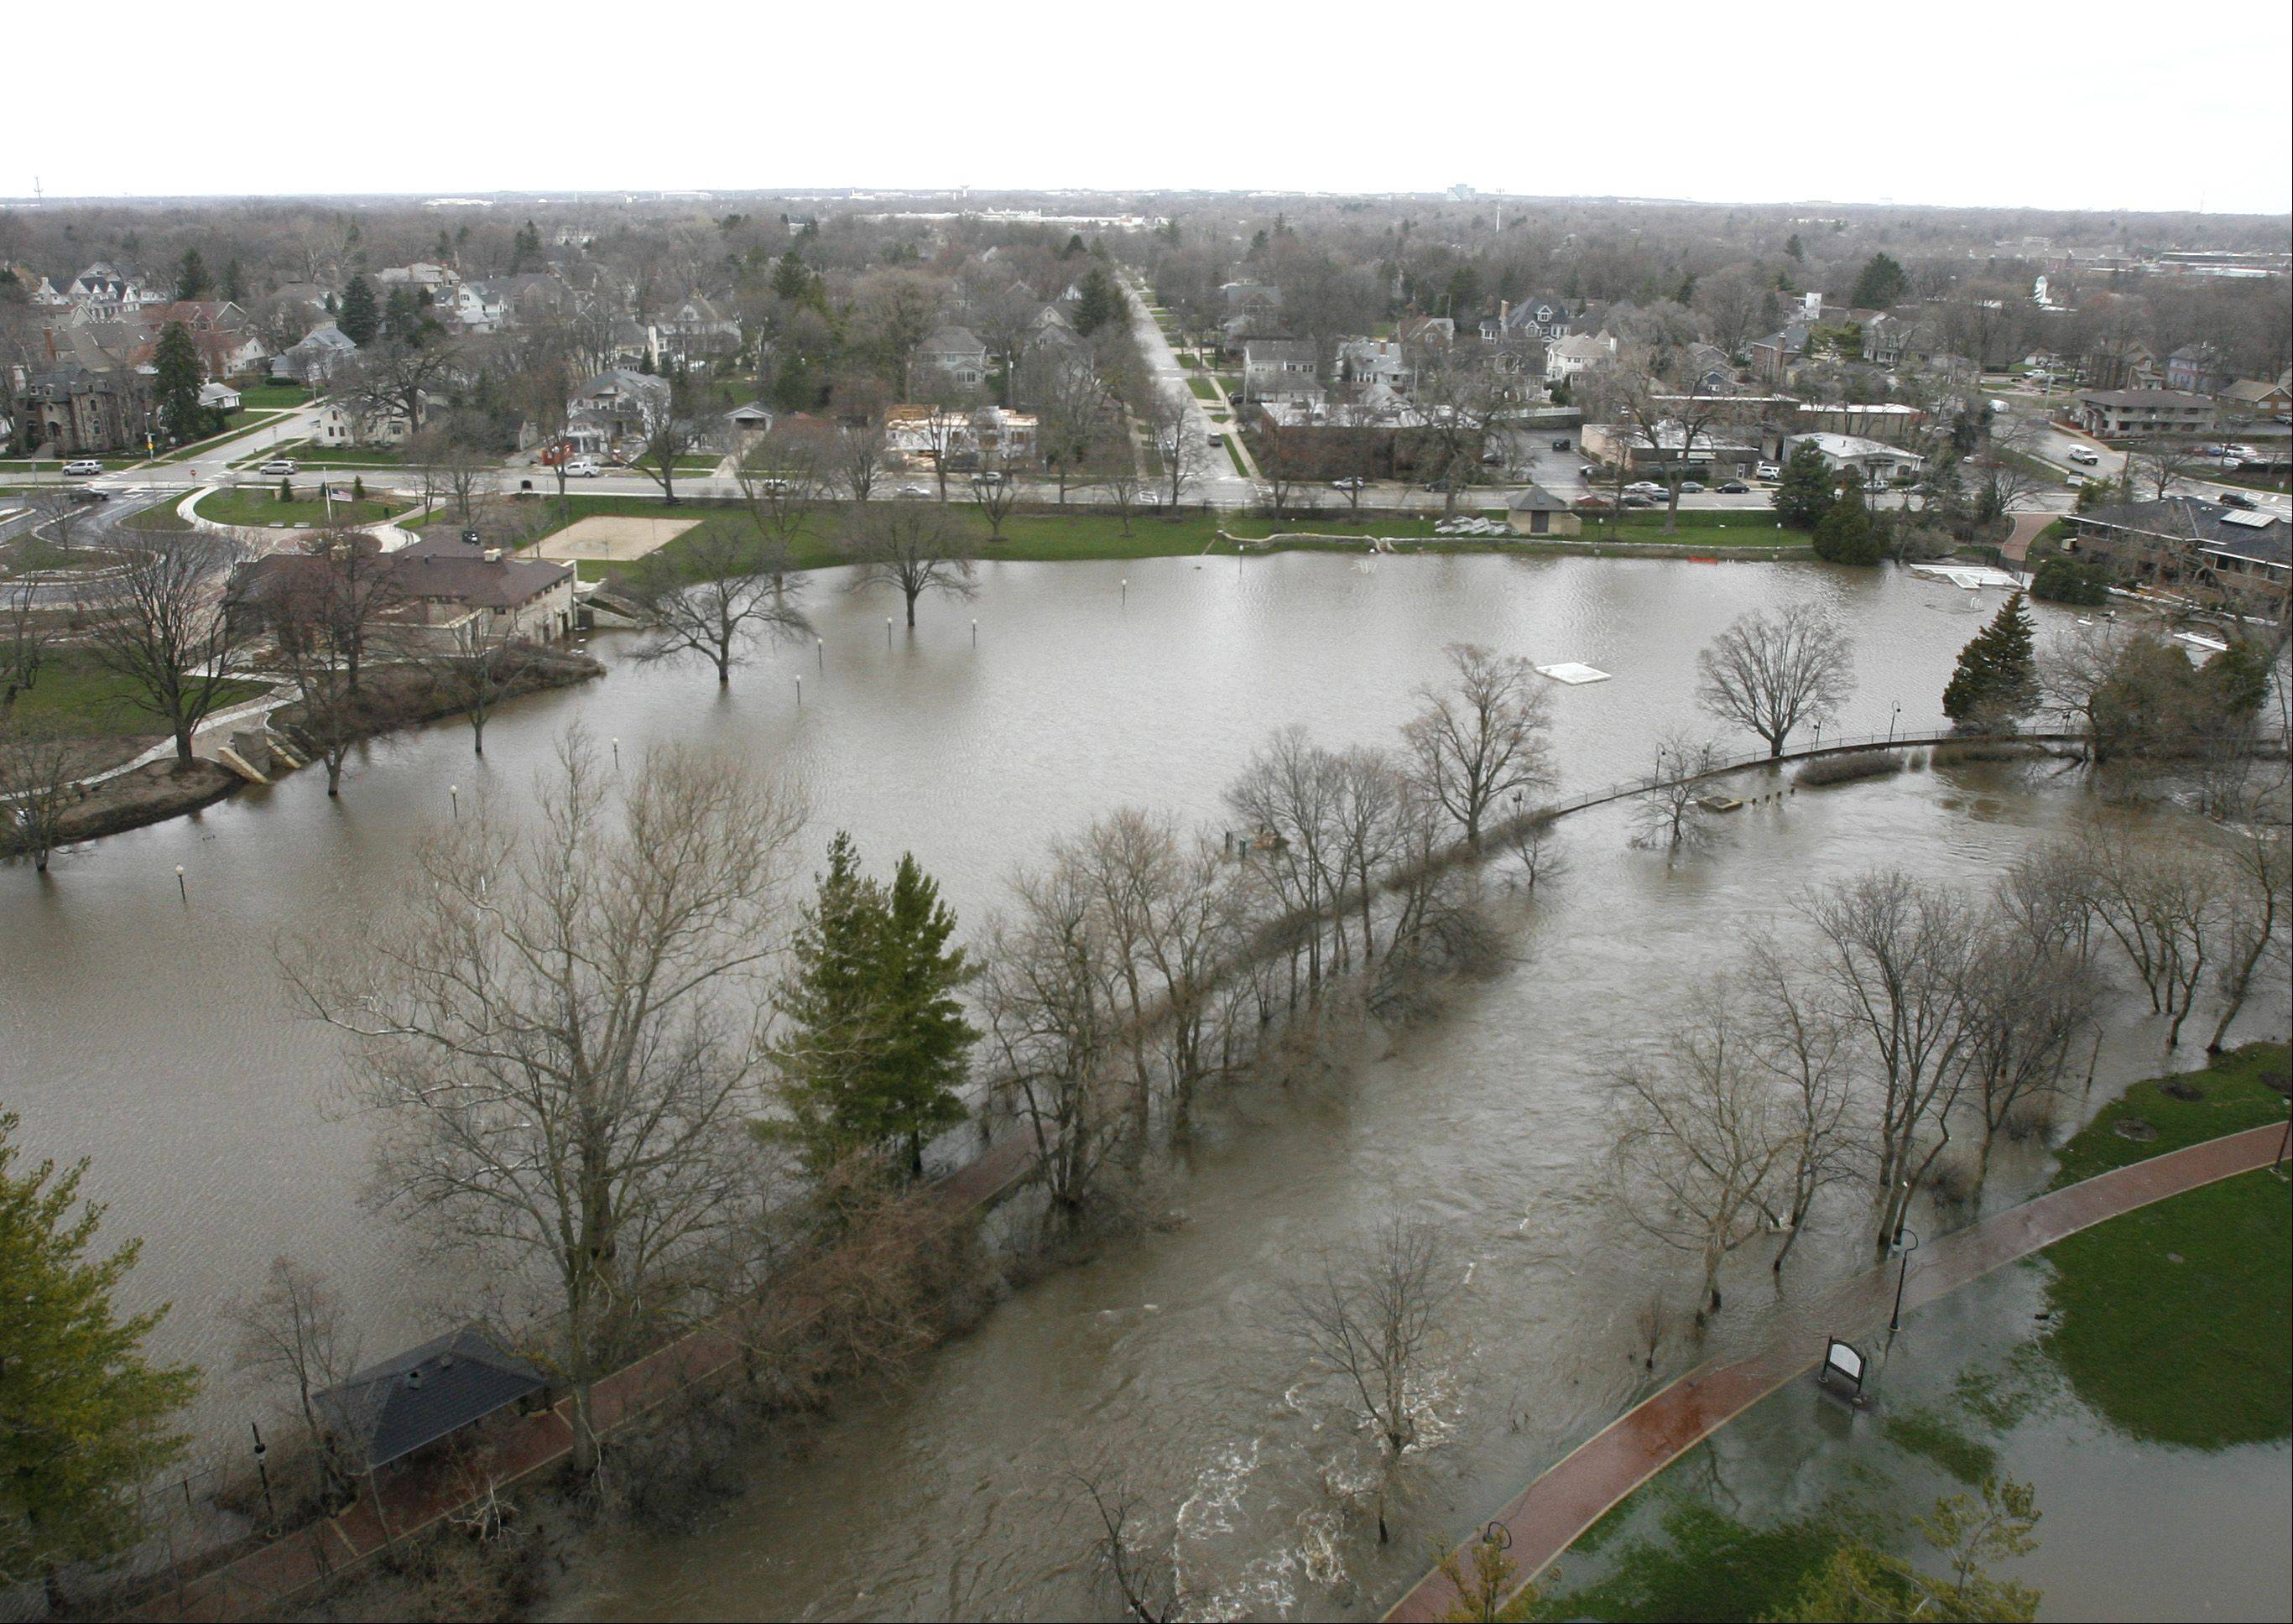 Centennial Beach has more water than it needs, as the city of Naperville works to clean up from ravaging downtown flooding.